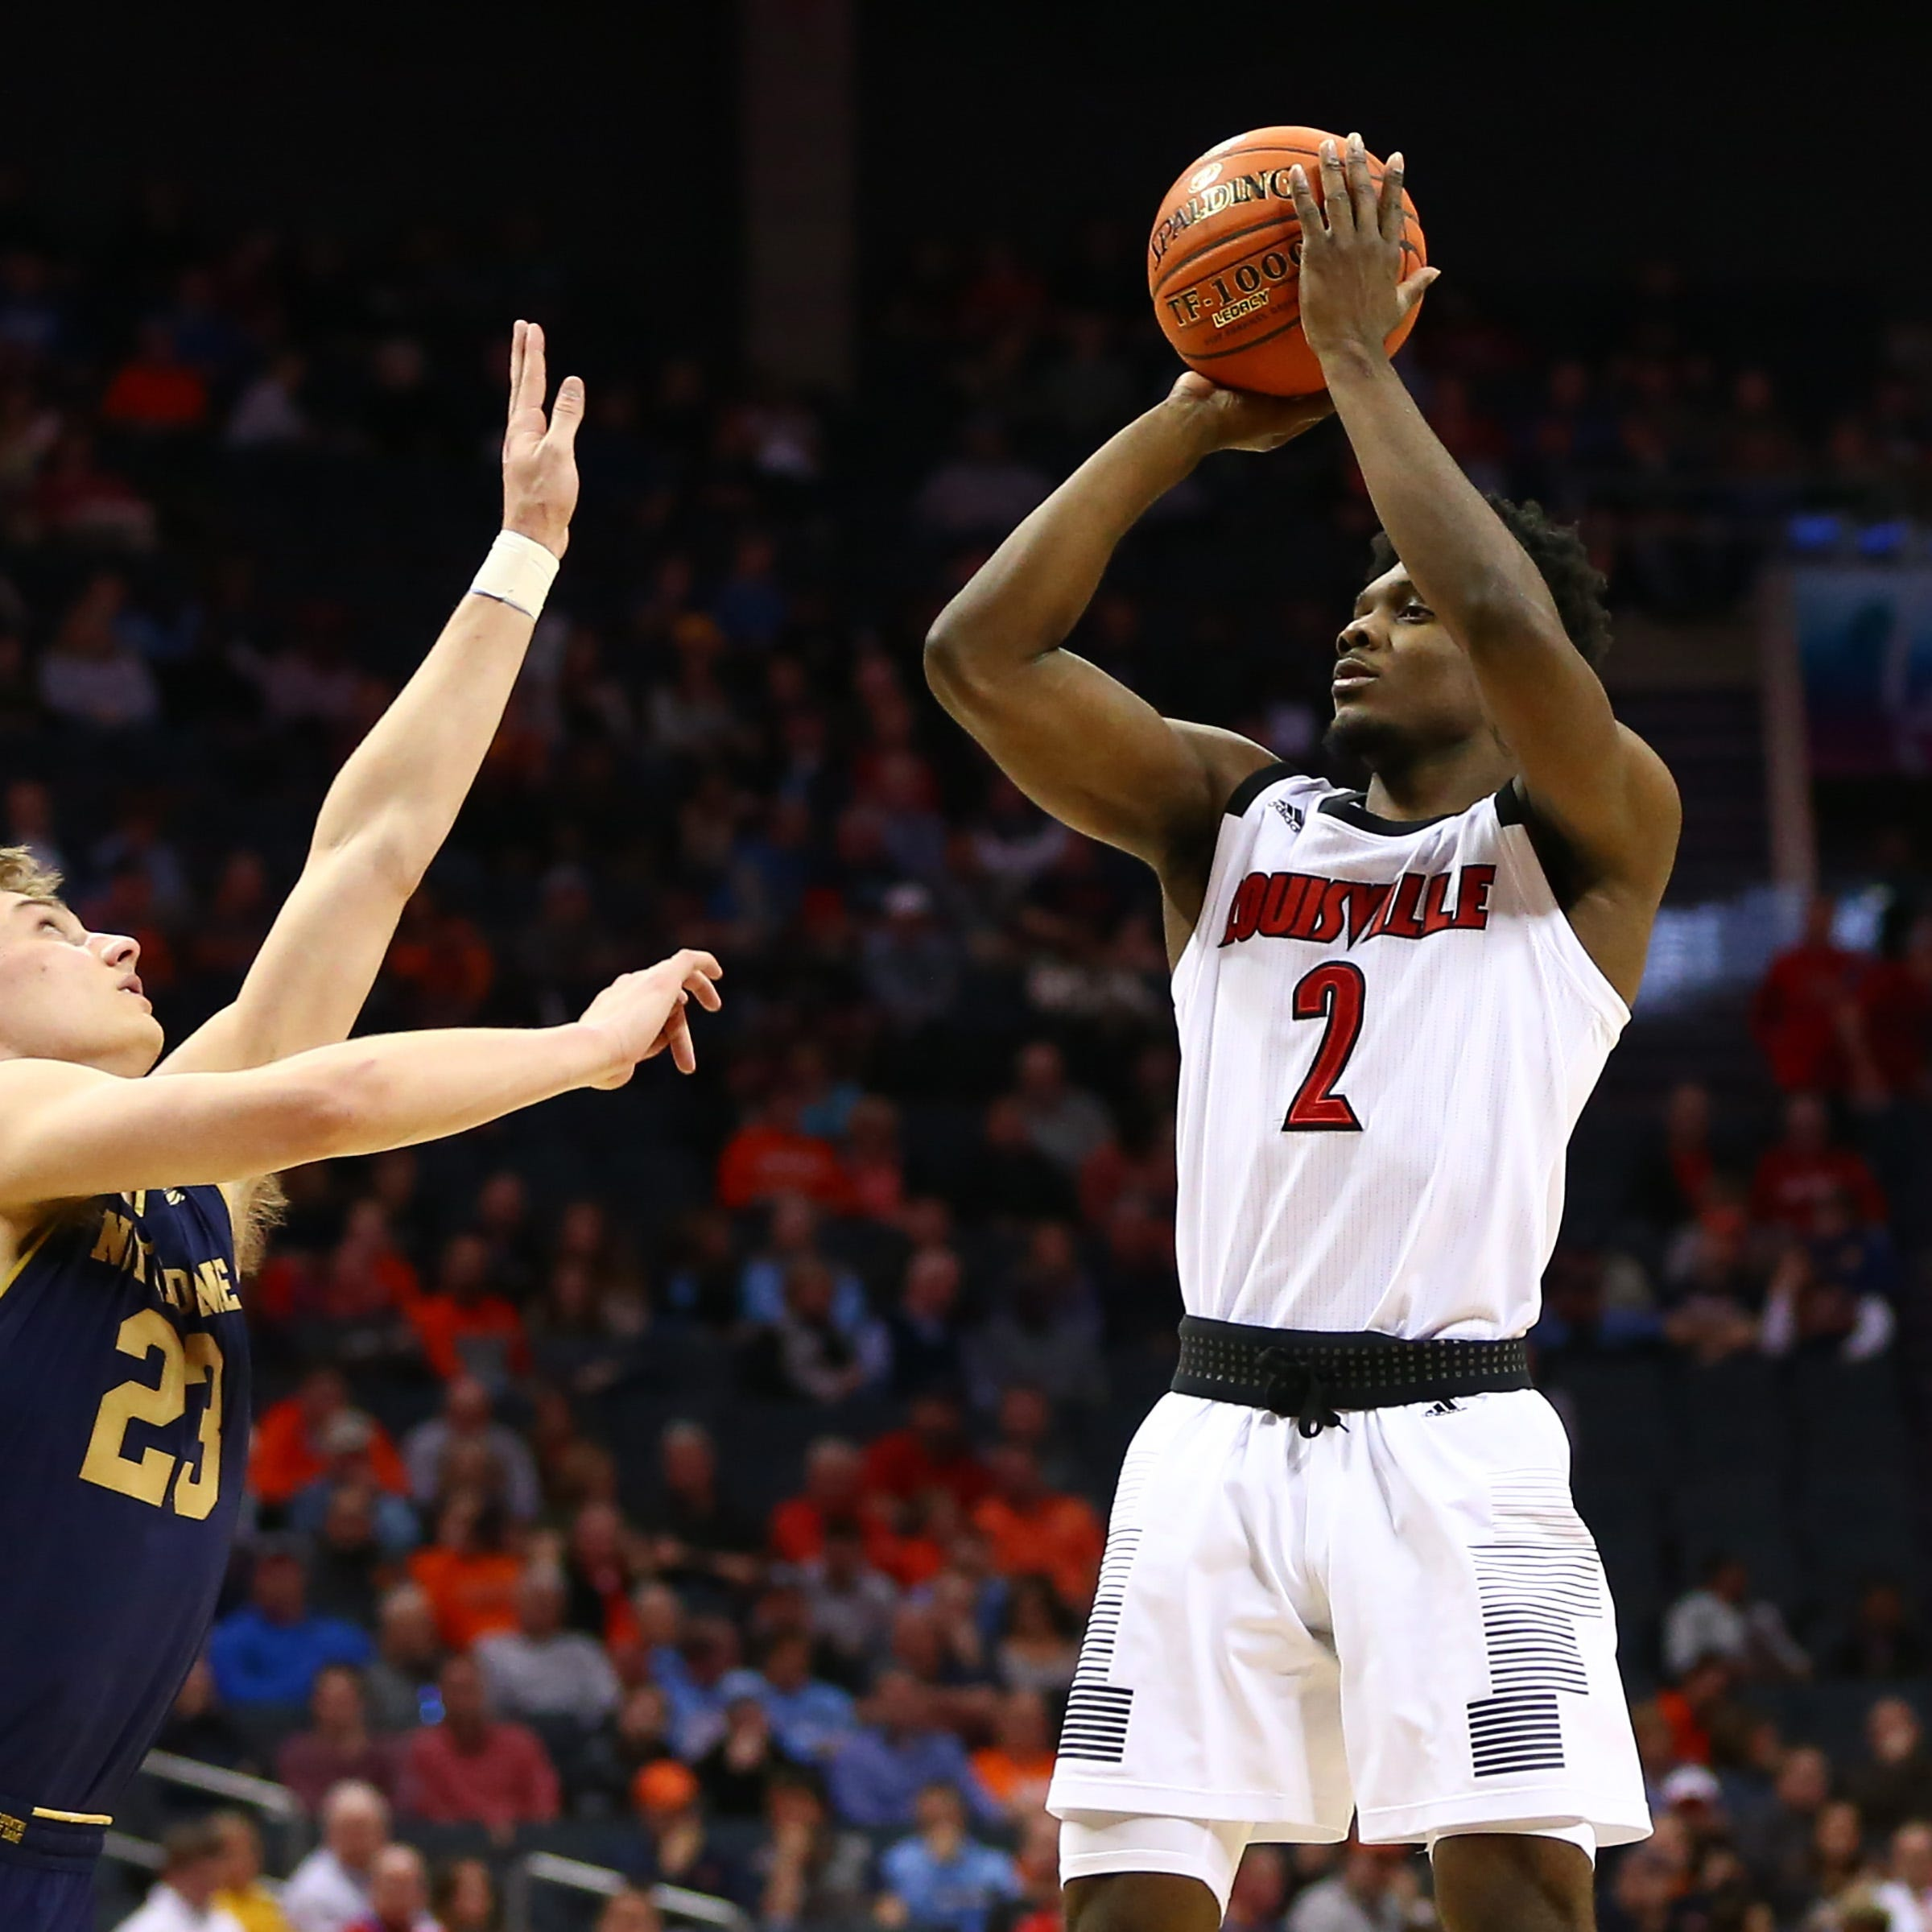 Louisville stuffs Notre Dame to advance to ACC Tournament quarterfinal